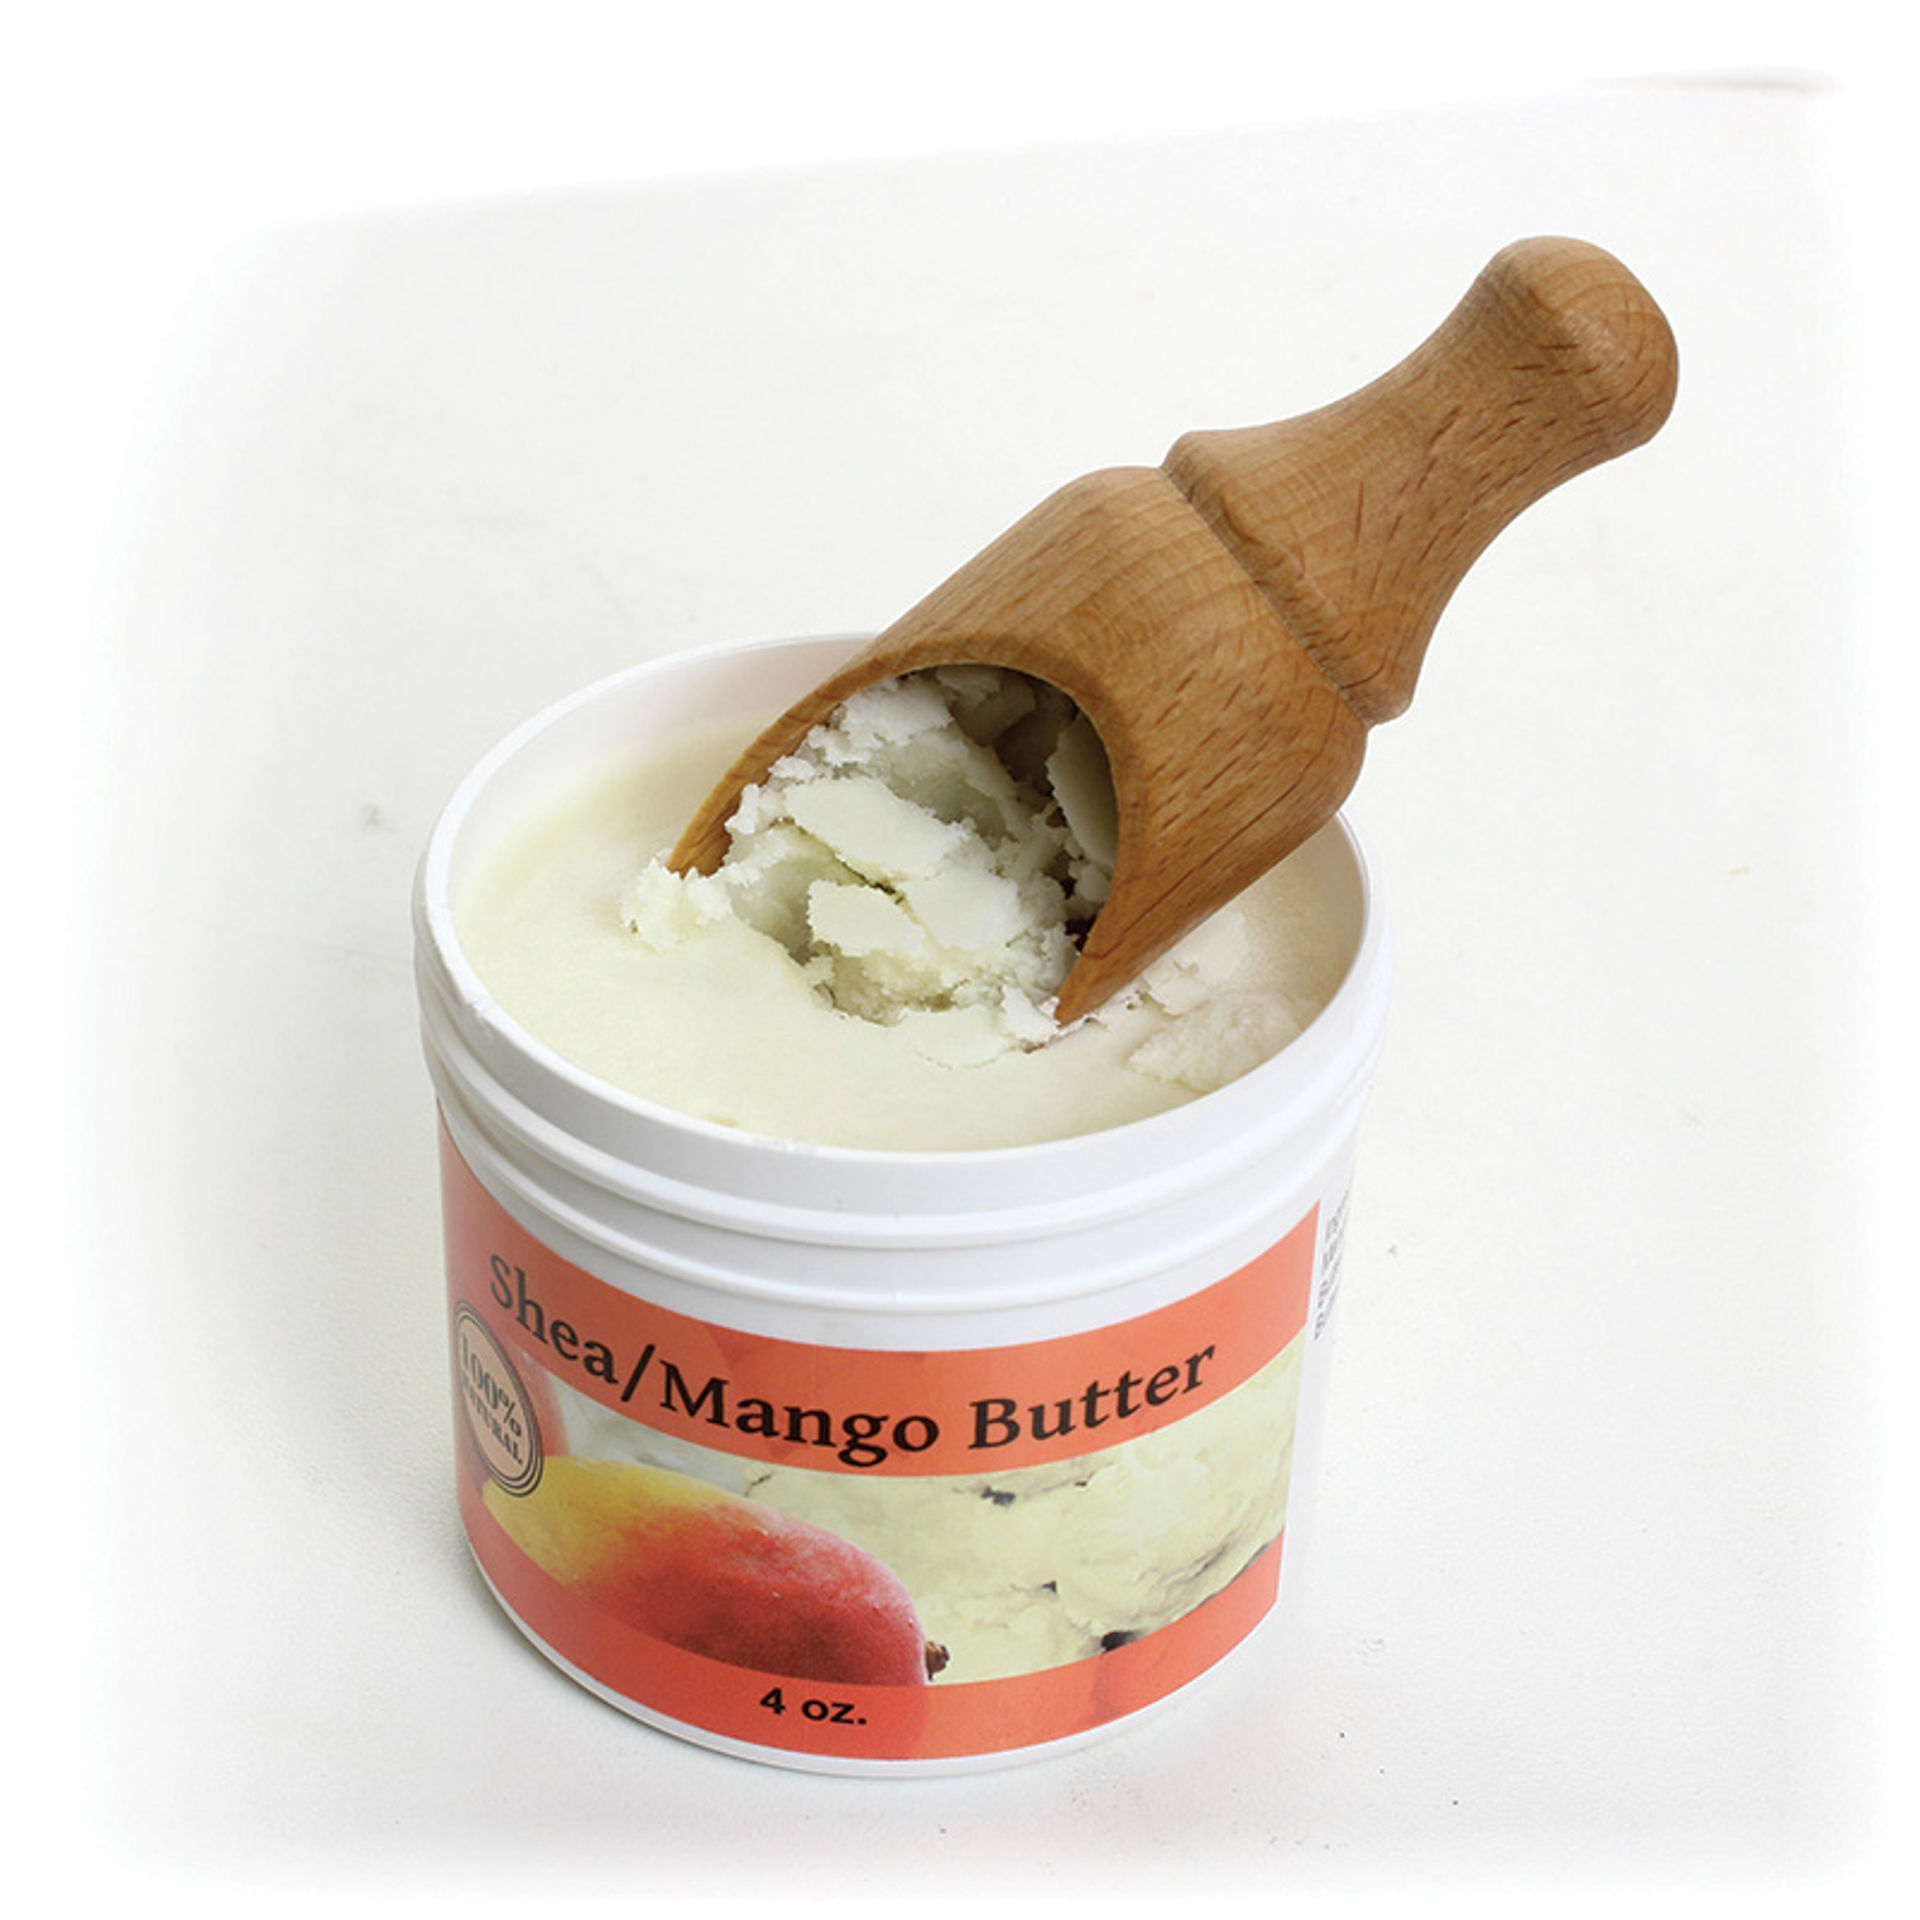 Picture of Shea/Mango Butter: 4 oz.